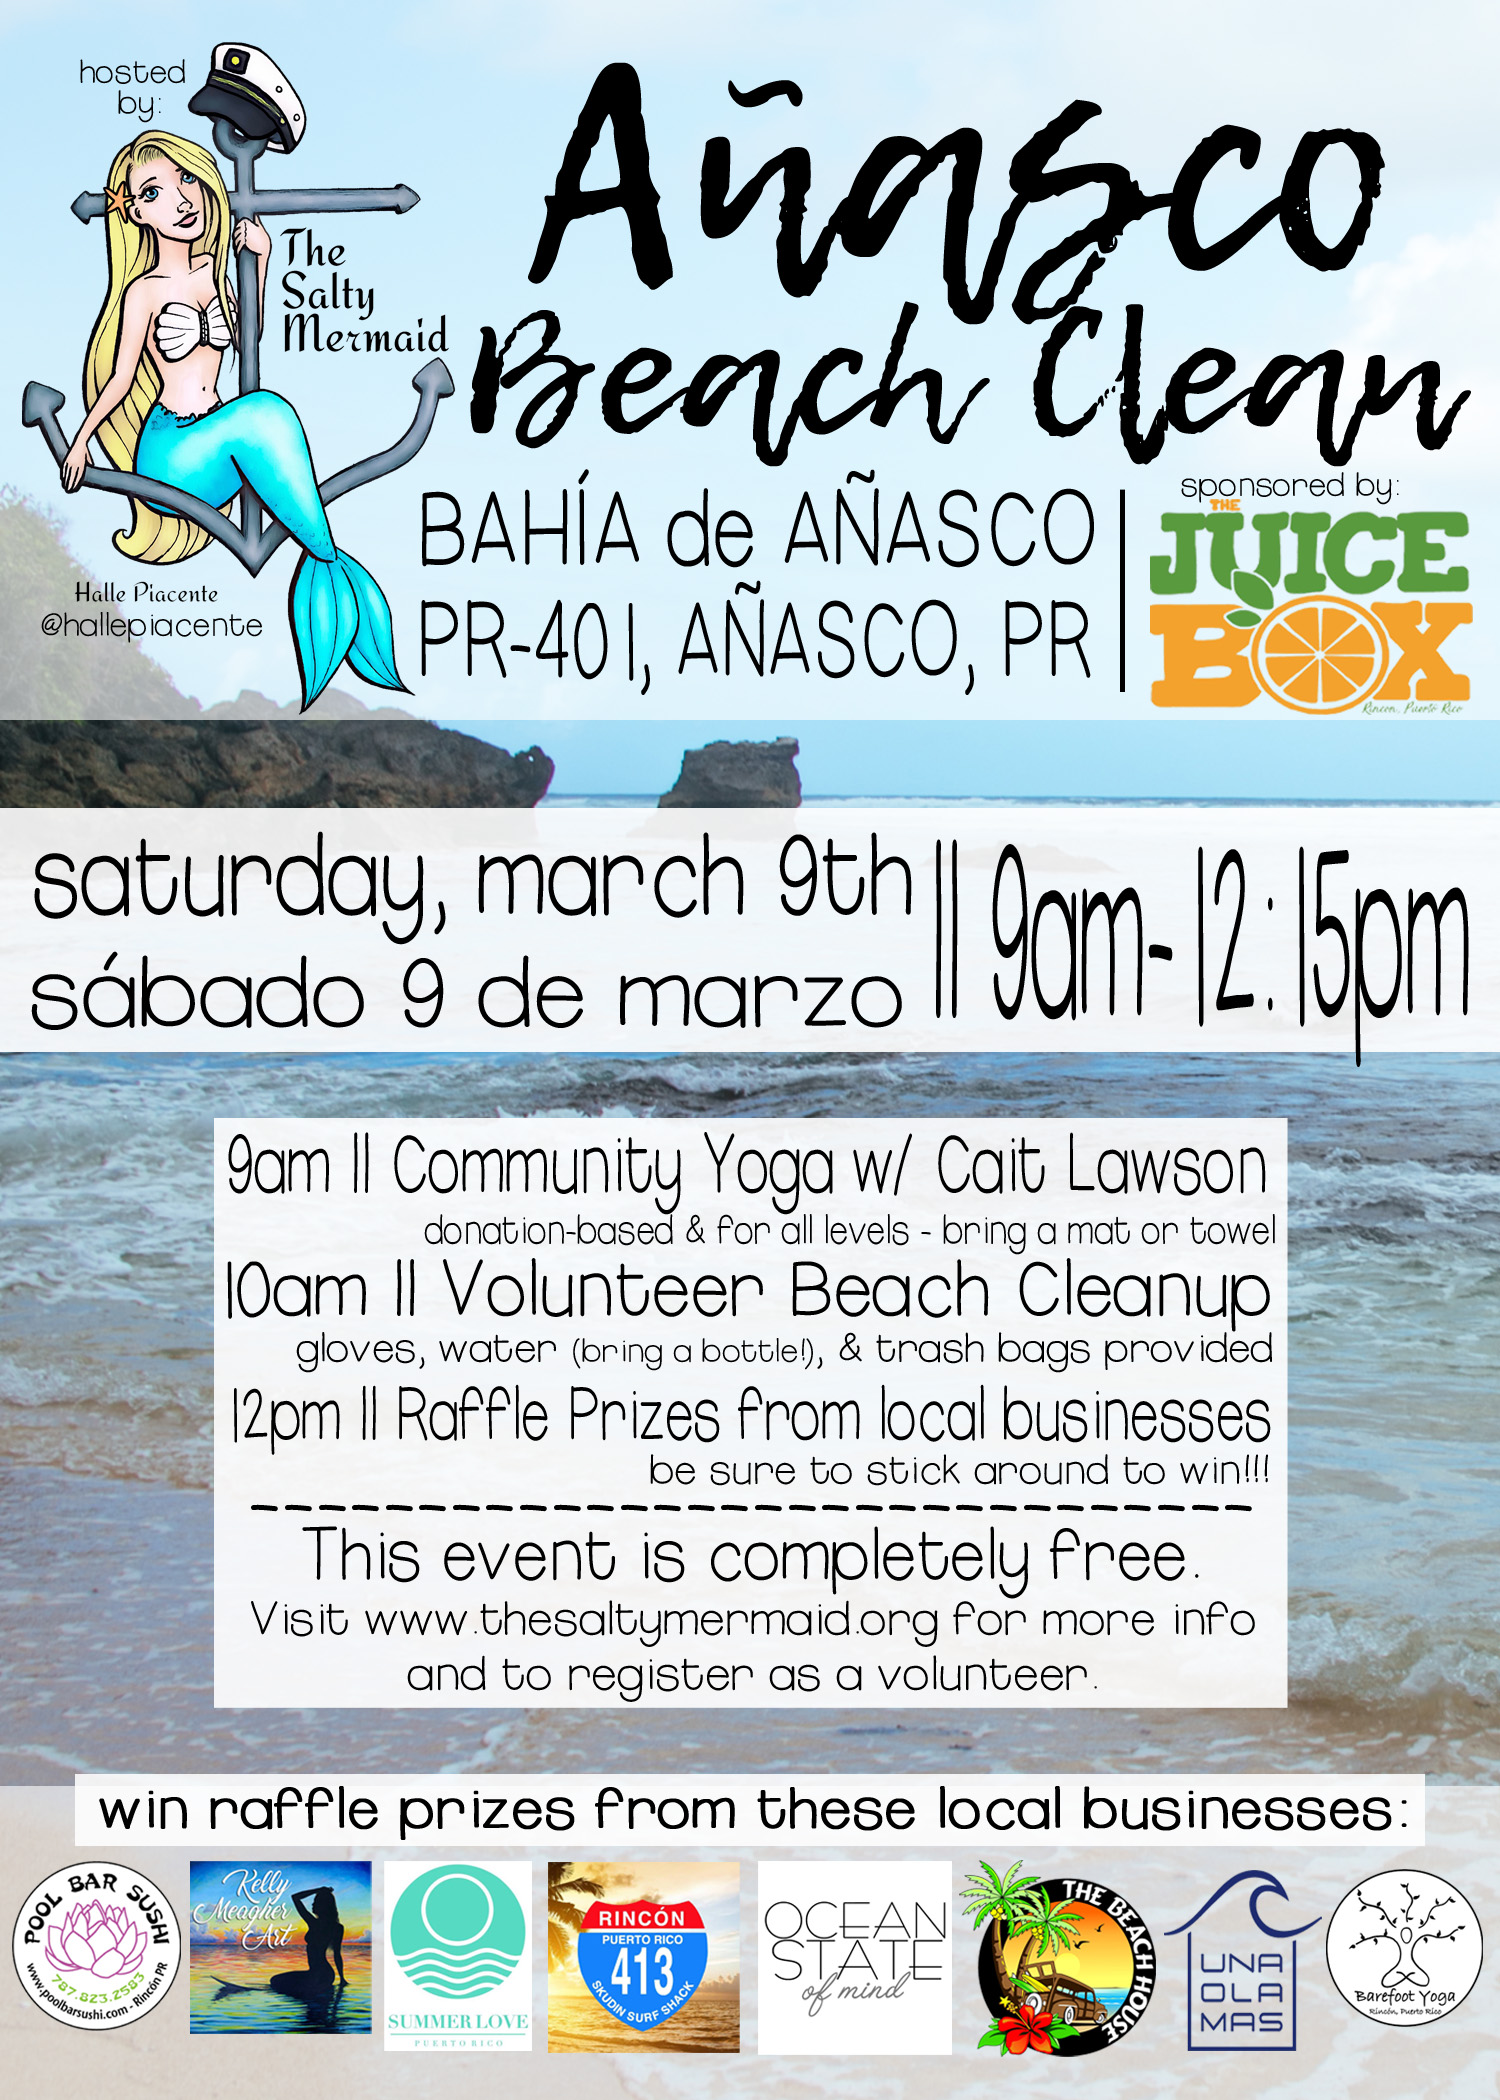 - Please join for our FIRST beach cleanup of 2019 organized by The Salty Mermaid and sponsored by The Juice Box Rincon!We will be participating in a volunteer beach cleanup to help CONSERVE our beaches/oceans, do YOGA, have FUN, and win PRIZES! Gloves, water, and trash bags will be provided. This event is completely free.